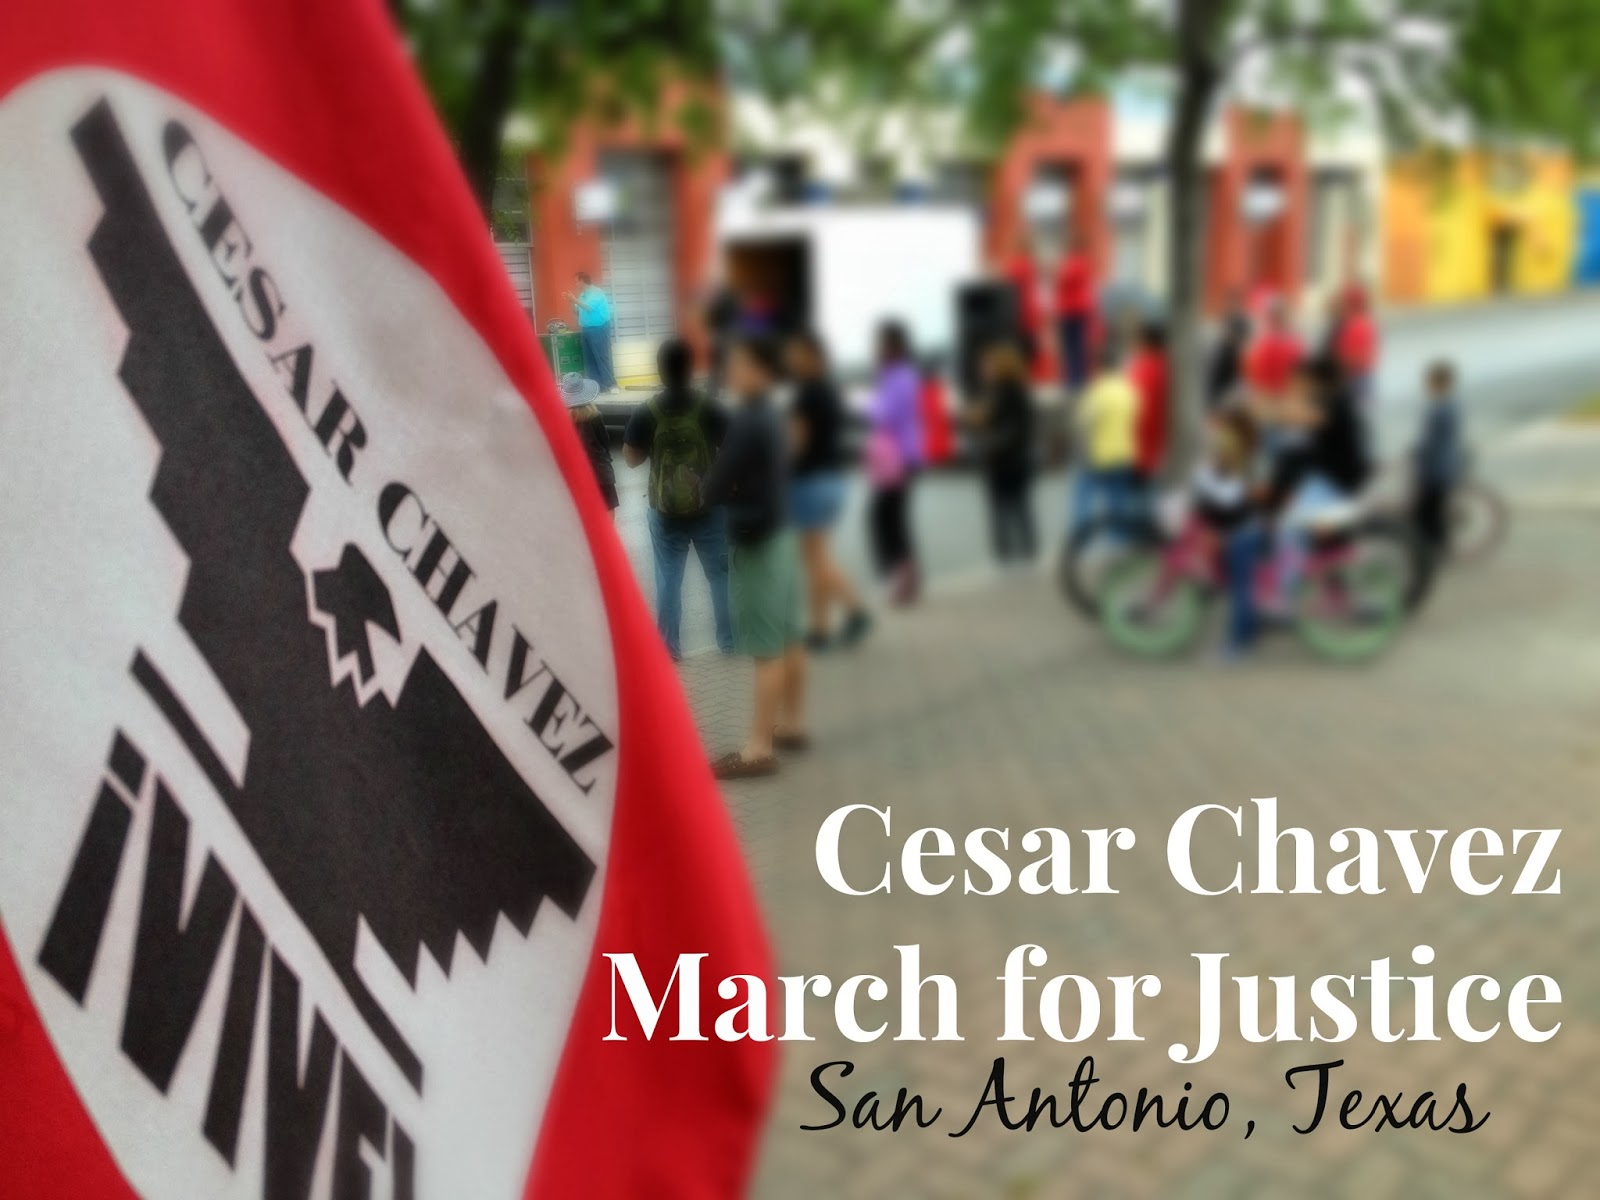 Cesar Chavez March for Justice in San Antonio, Texas and other family events